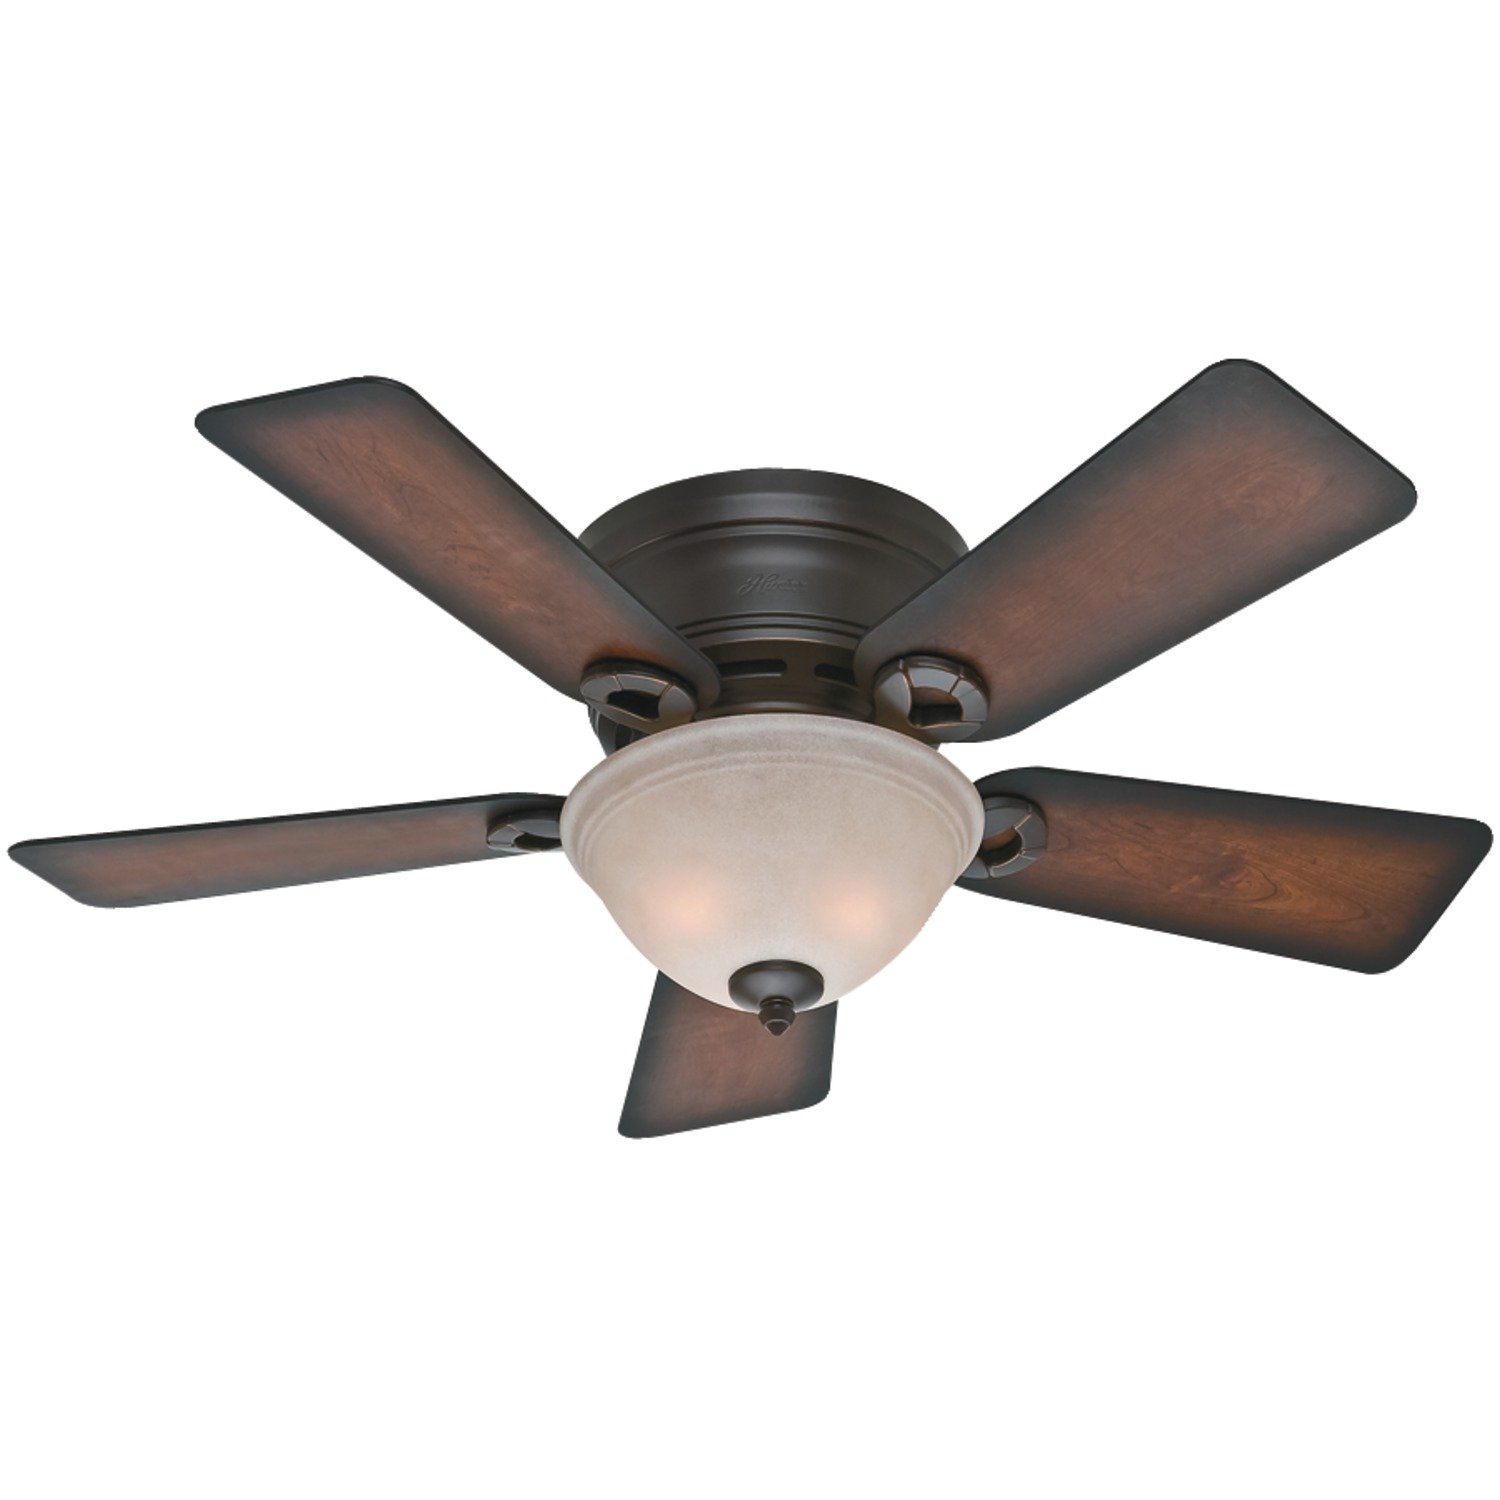 Hunter 51023 Conroy 42-Inch Onyx Bengal Ceiling Fan with Five Burnished Mahogany Blades and a Light Kit